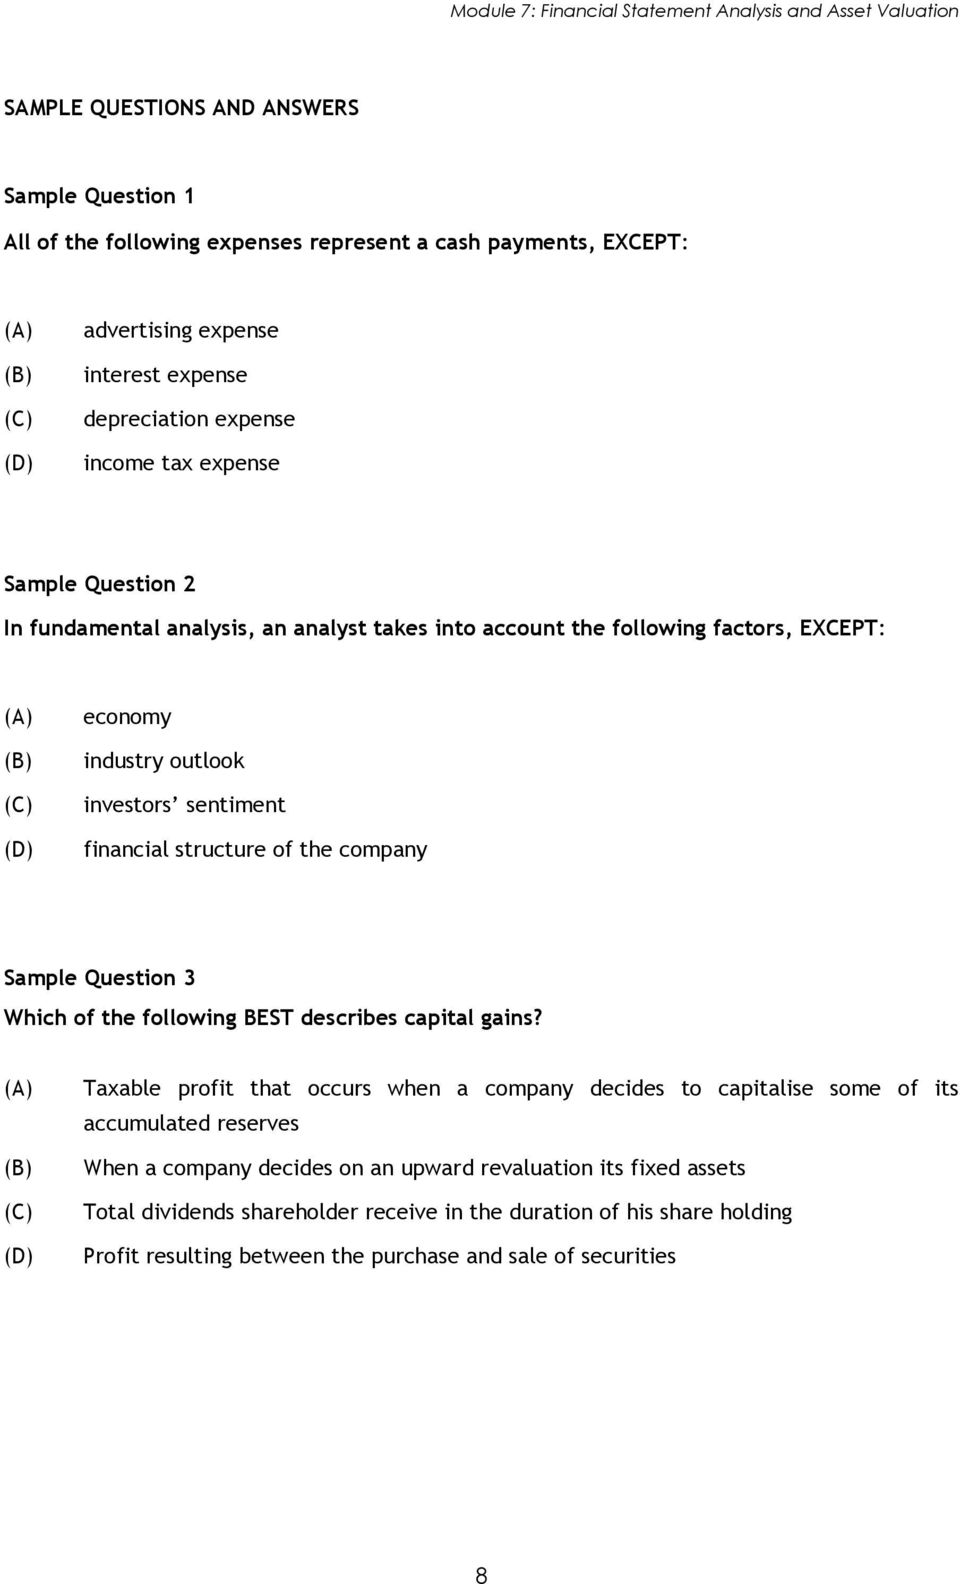 Module 7 Financial Statement Analysis and Asset Valuation PDF – Sample Statement Analysis